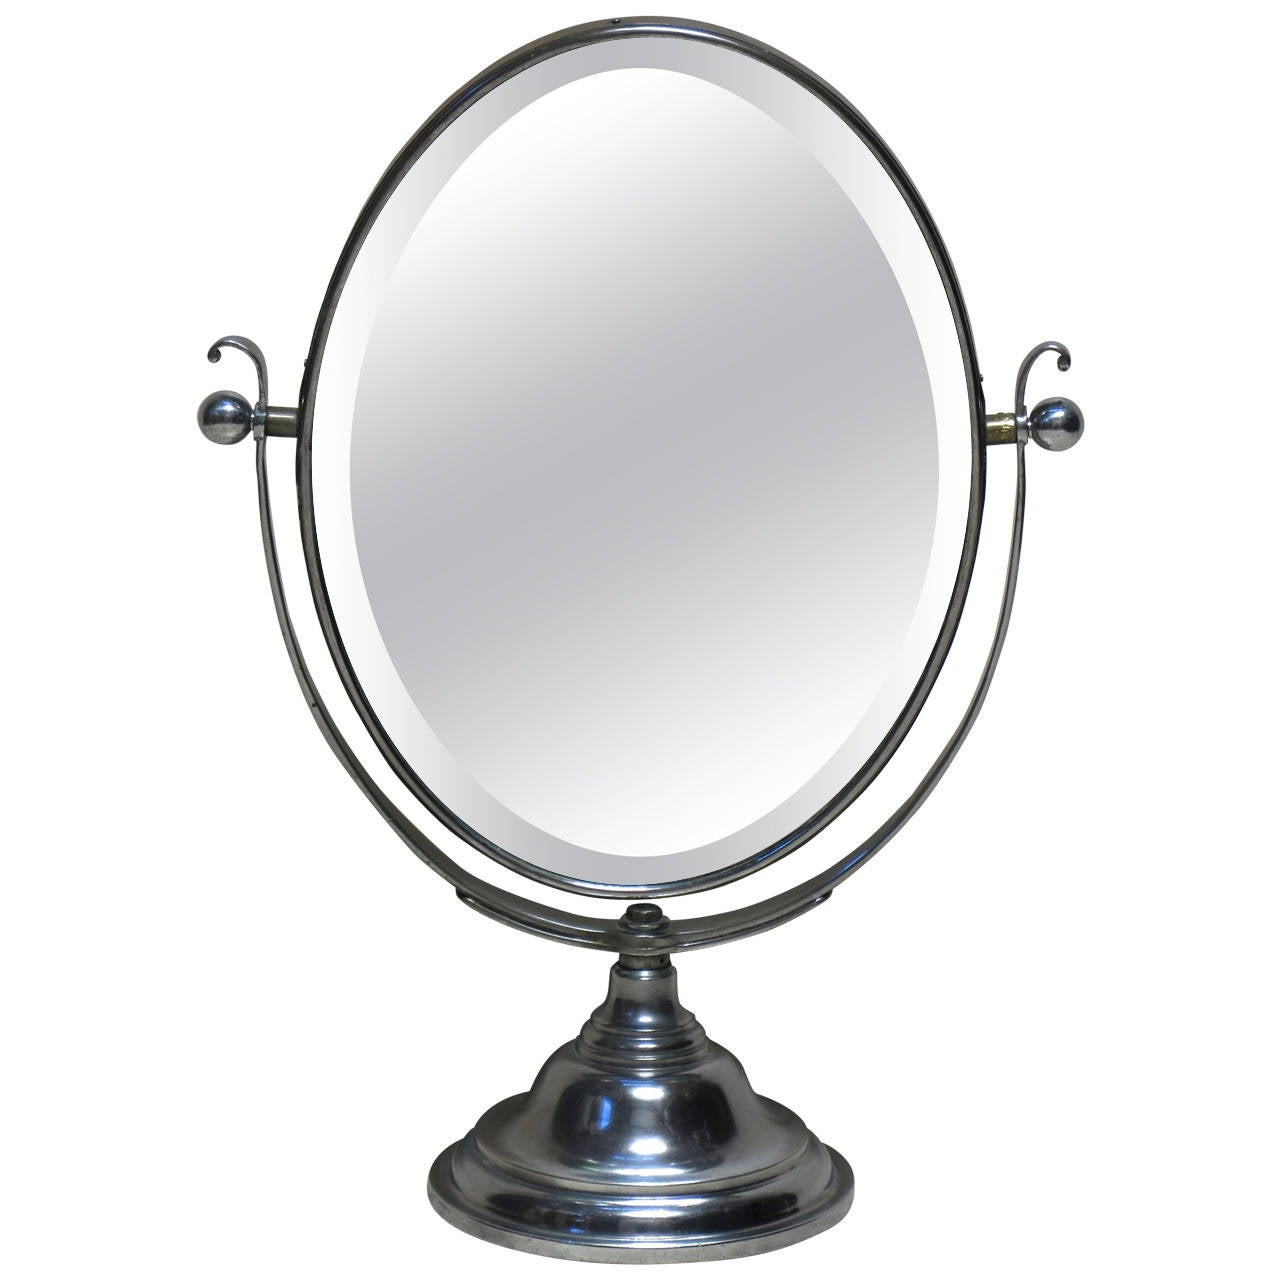 Large double sided vanity mirror france early 20th for Large vanity mirror